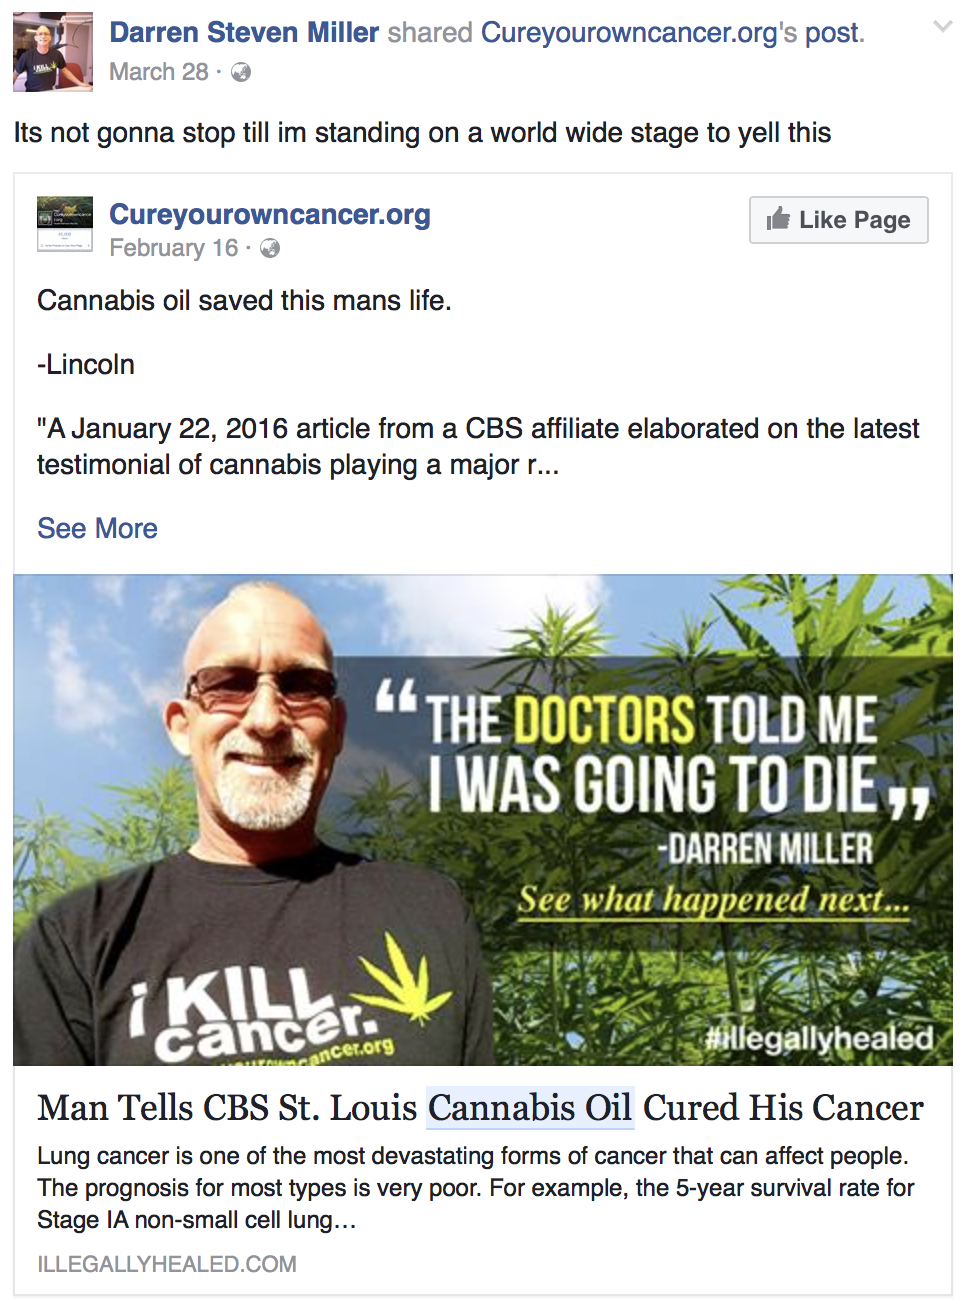 cannabis-oil-cured-his-cancer.png